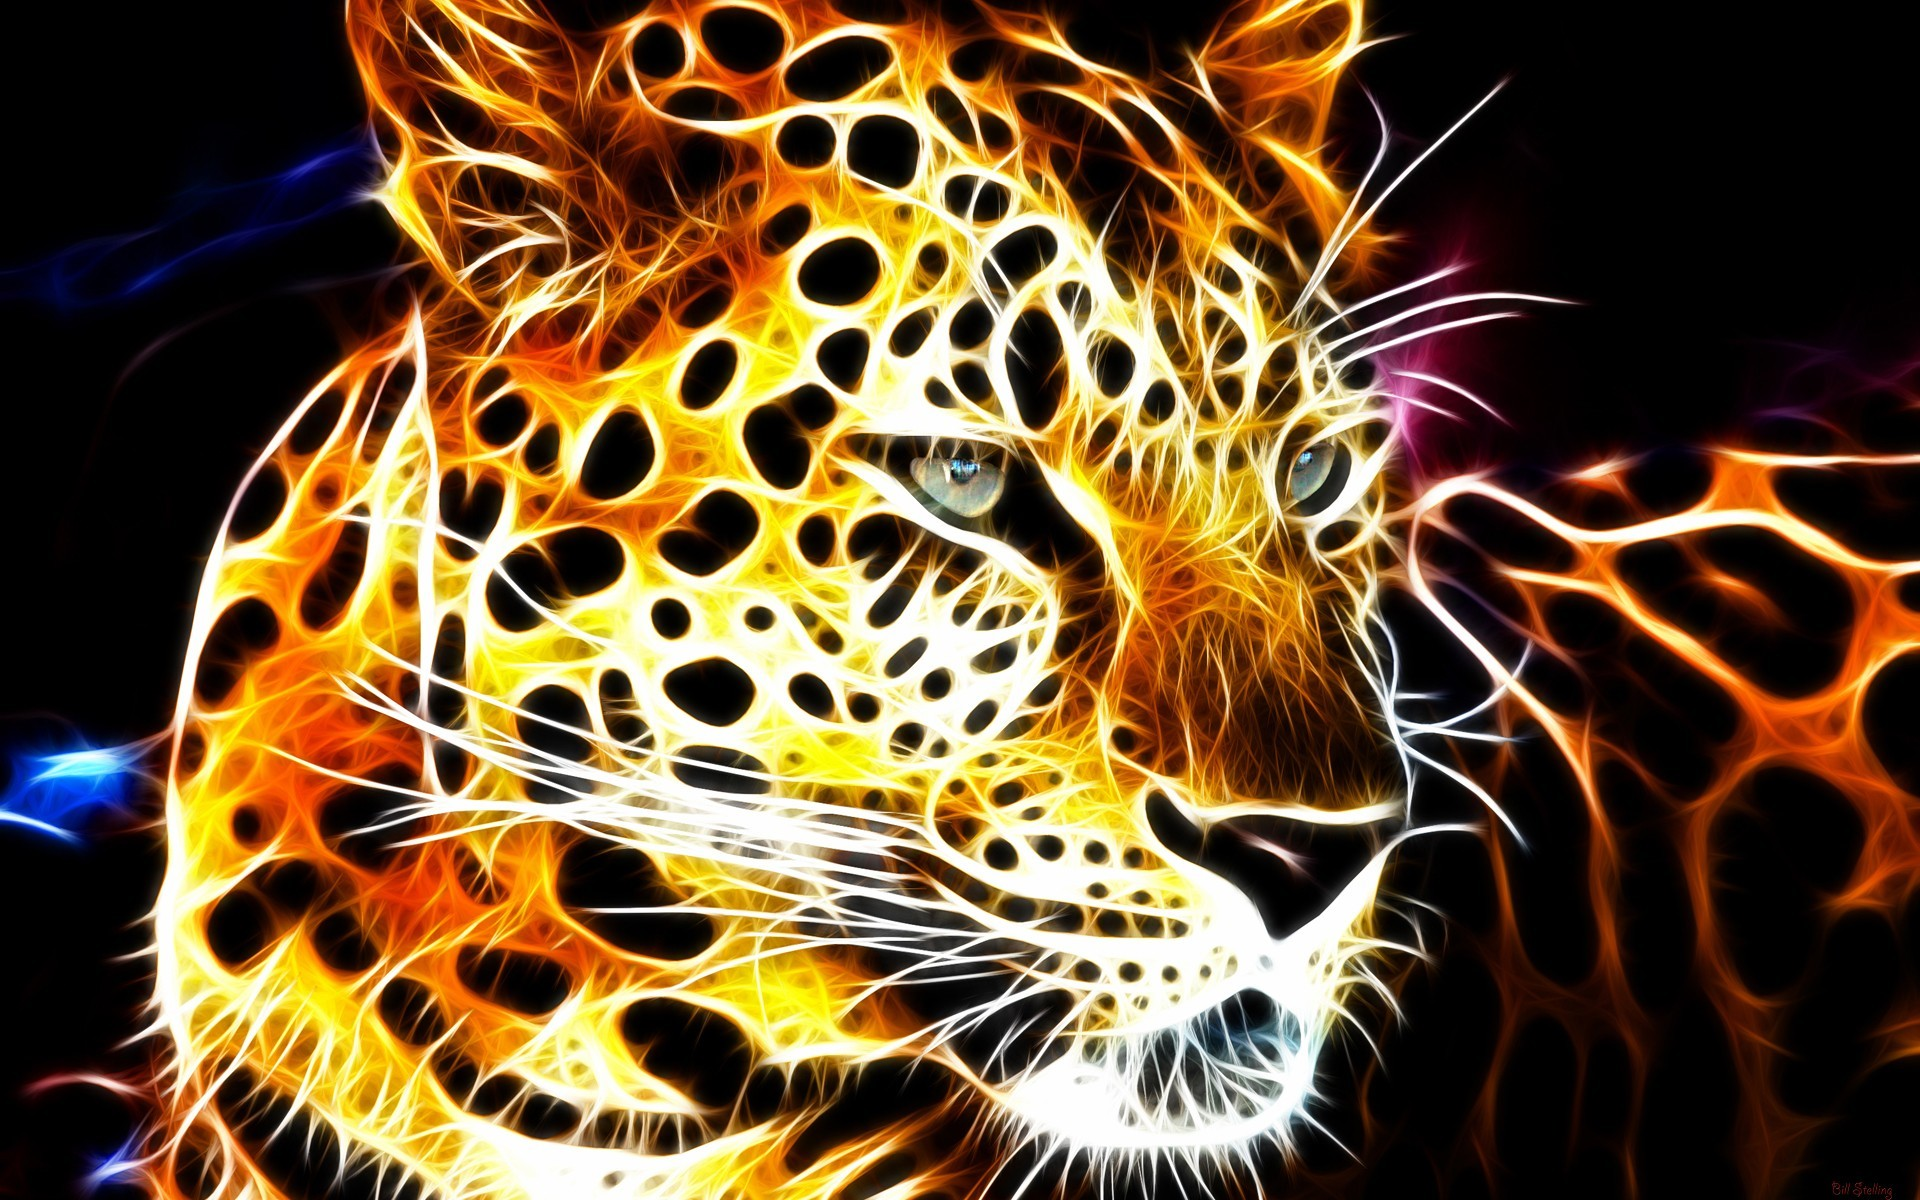 Cool animal backgrounds 66 images - Moving animal wallpapers ...